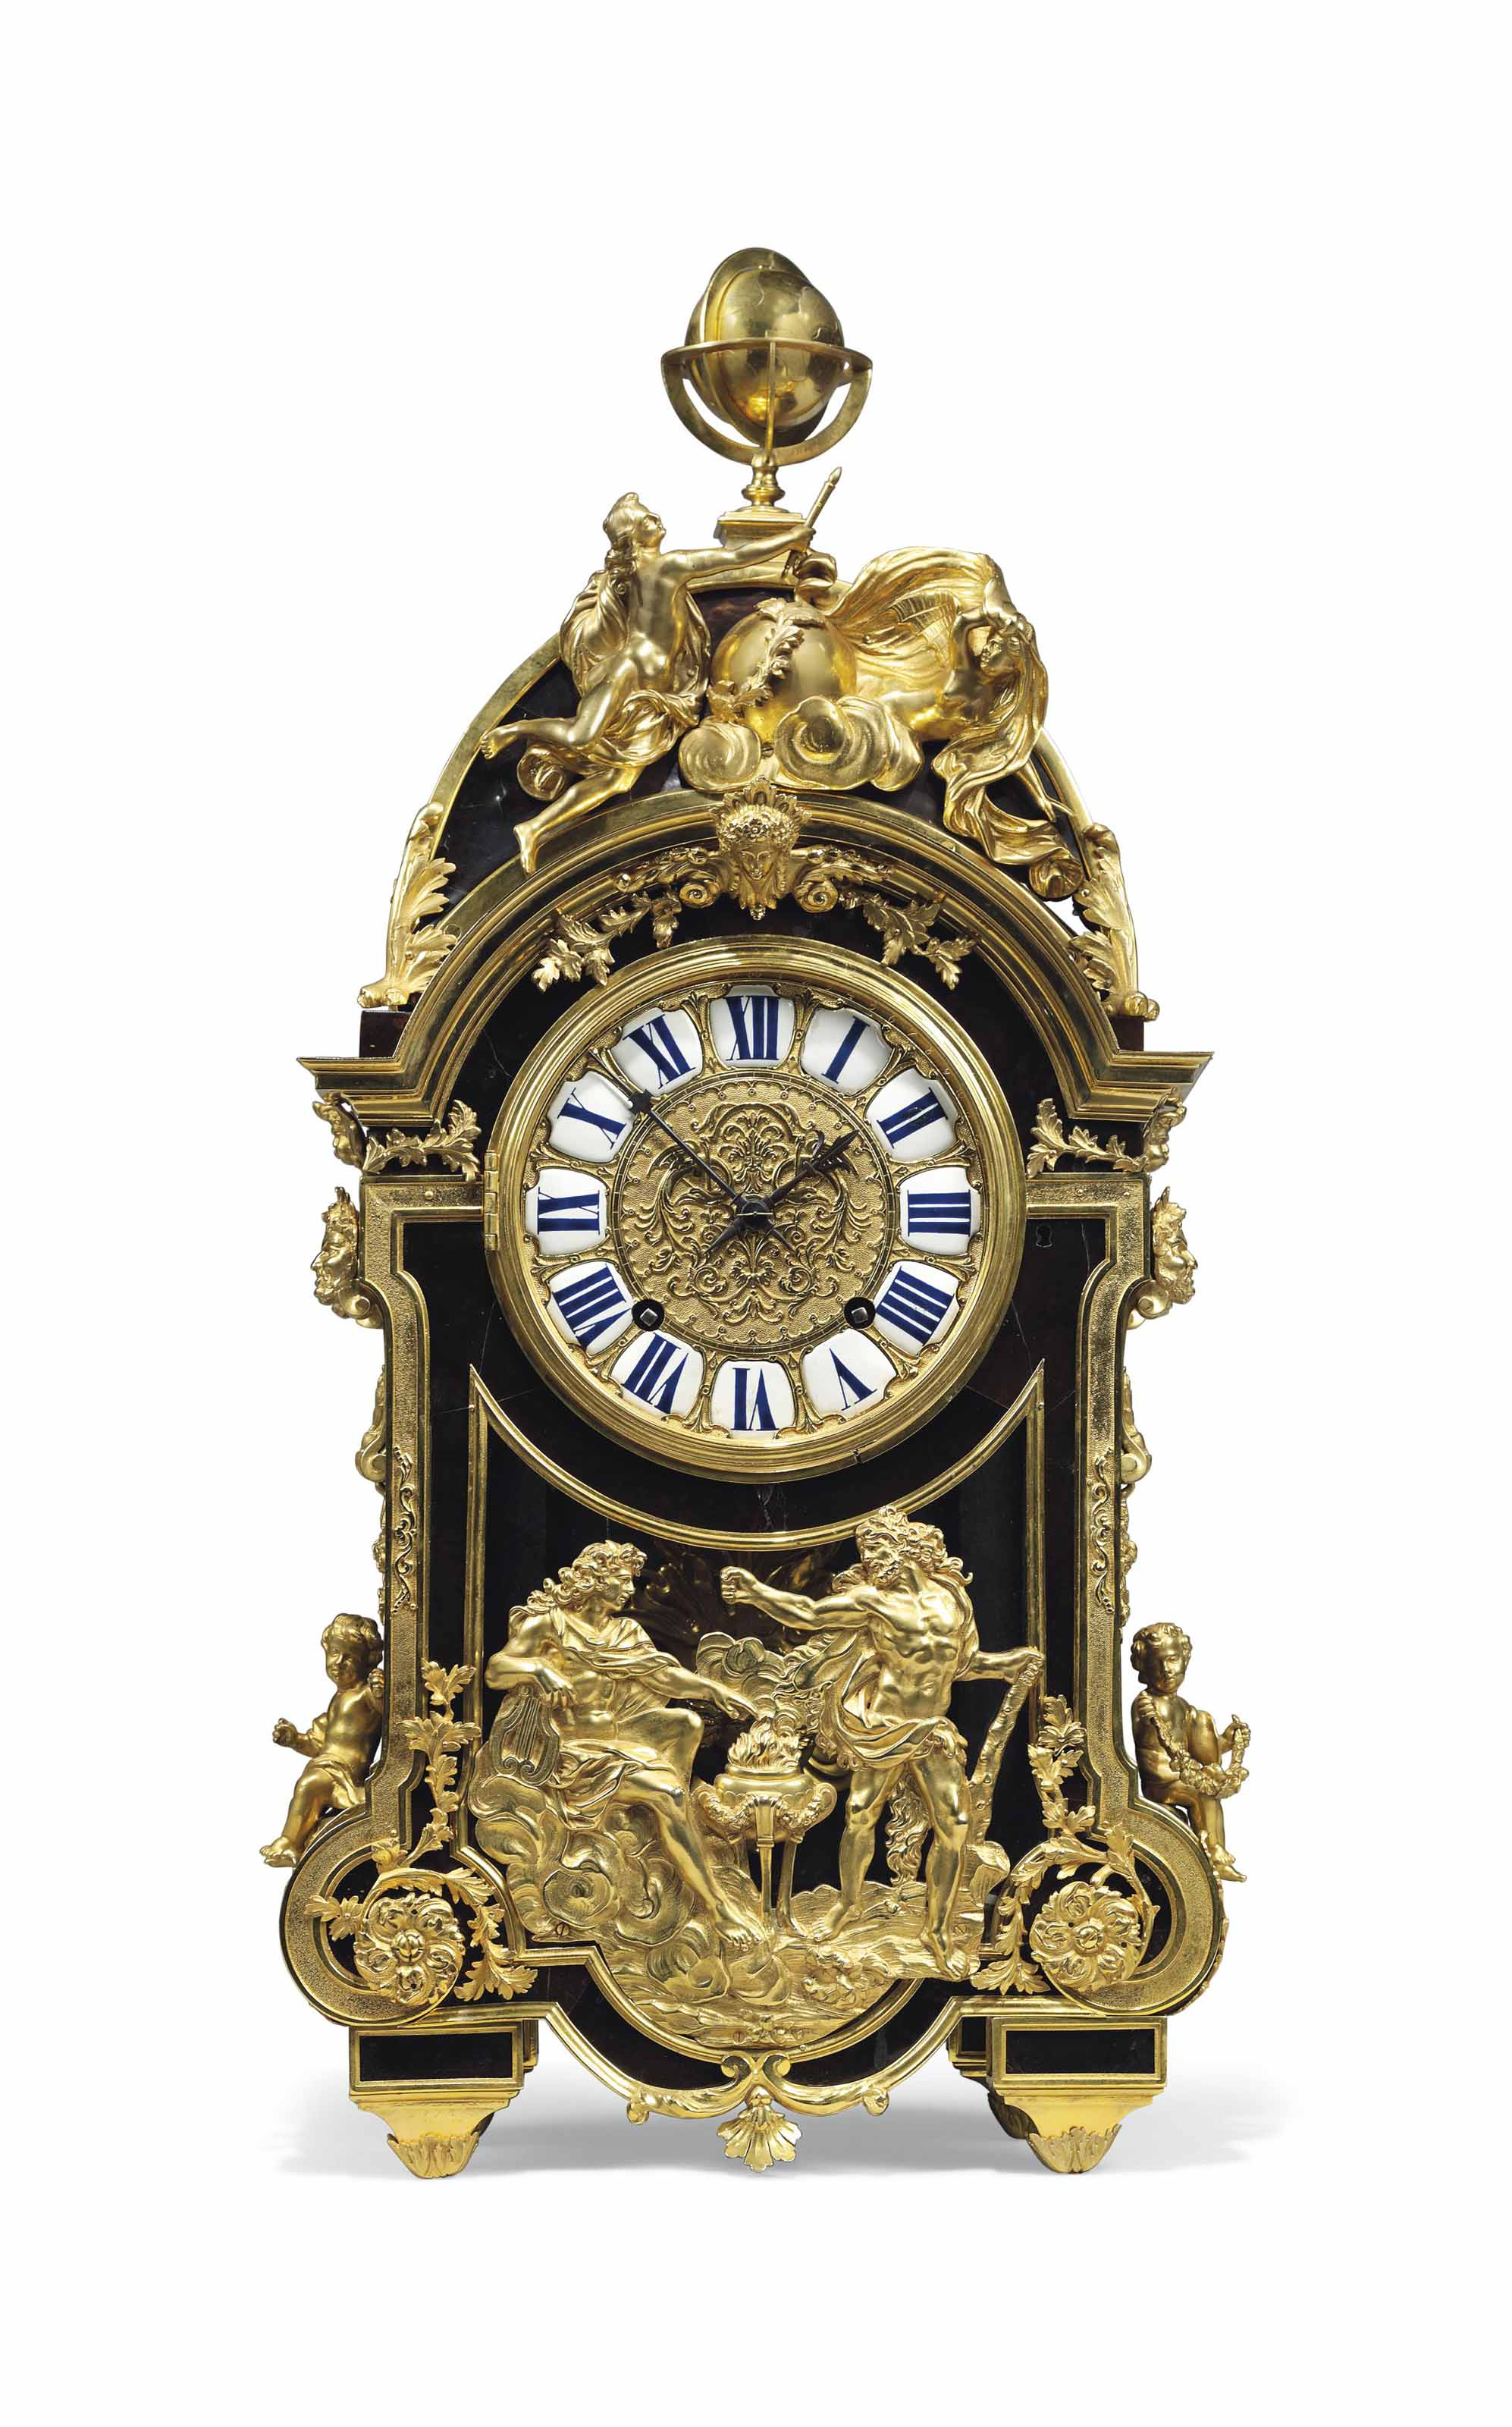 A FRENCH ORMOLU-MOUNTED AND HORN AND TORTOISESHELL-INLAID EBONY 'BOULLE' MARQUETRY STRIKING MANTEL CLOCK